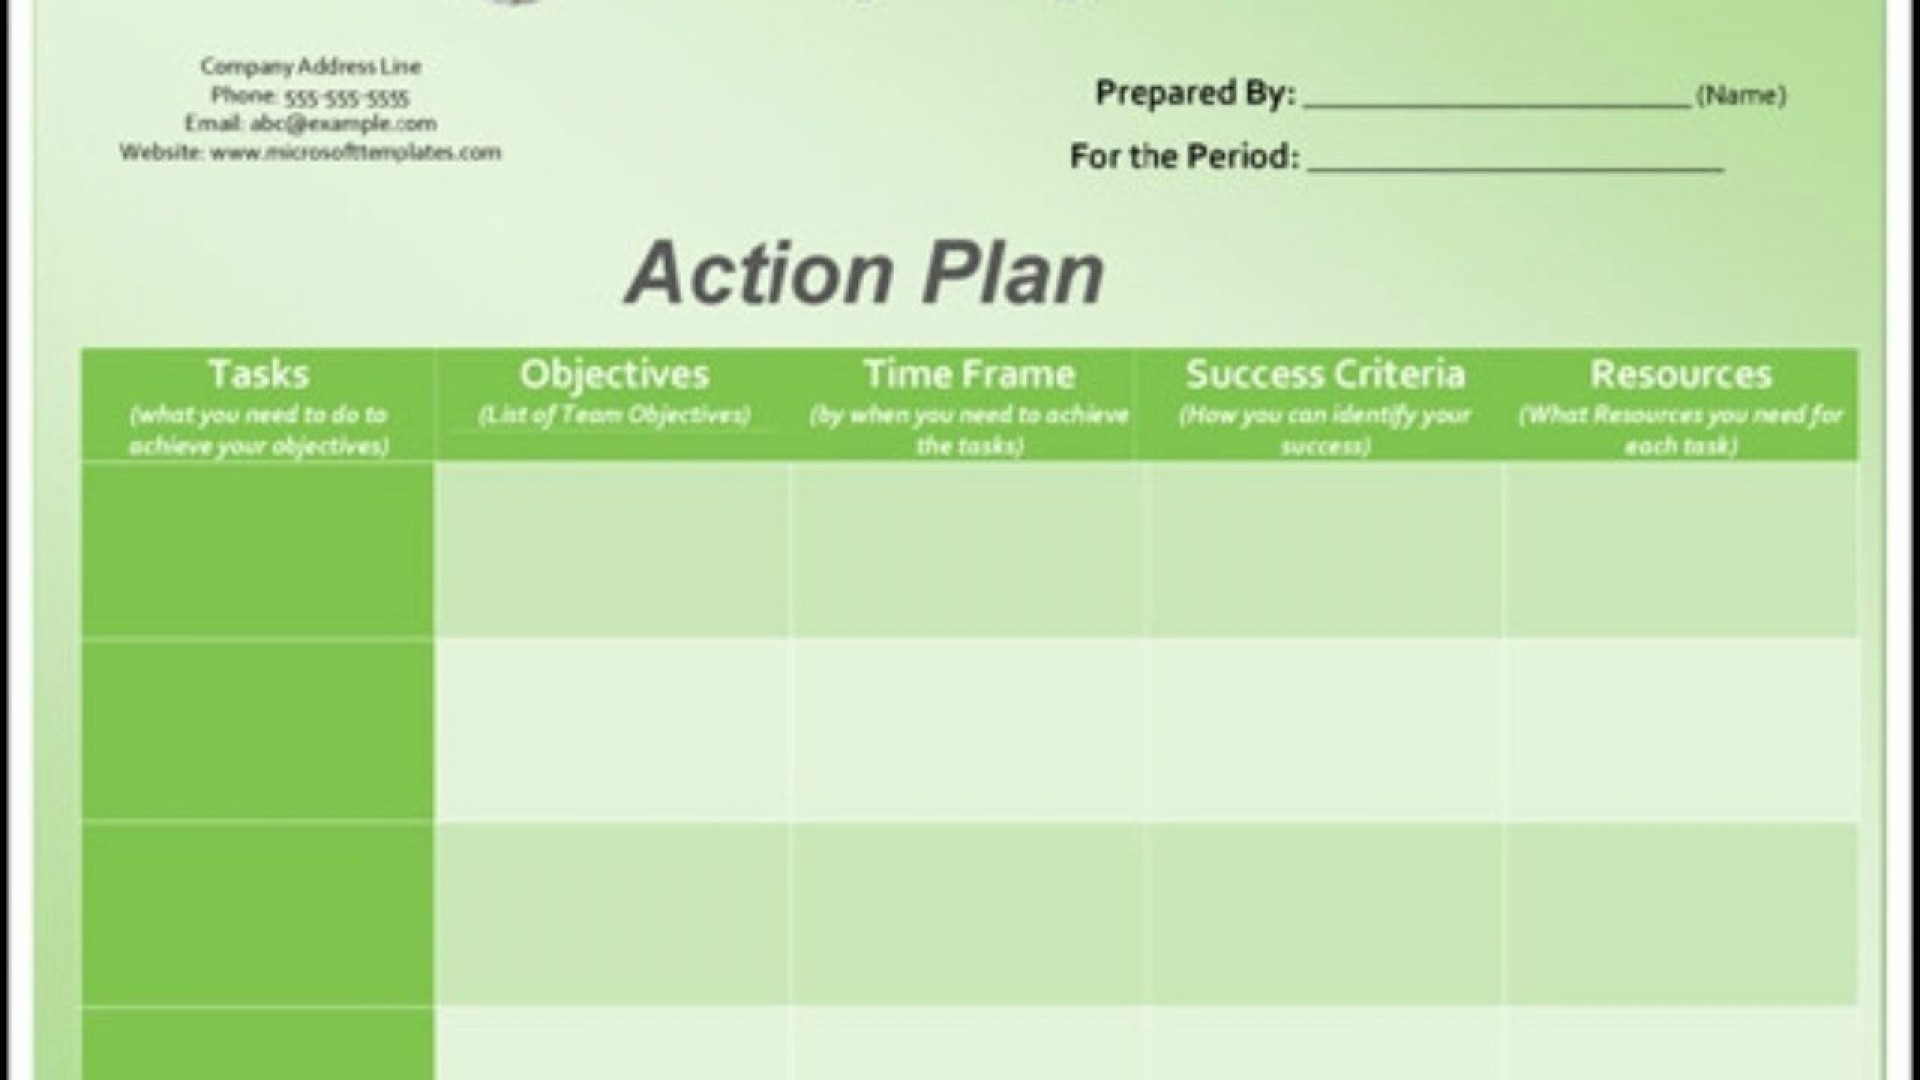 004 Imposing Action Plan Template Excel Concept 1920